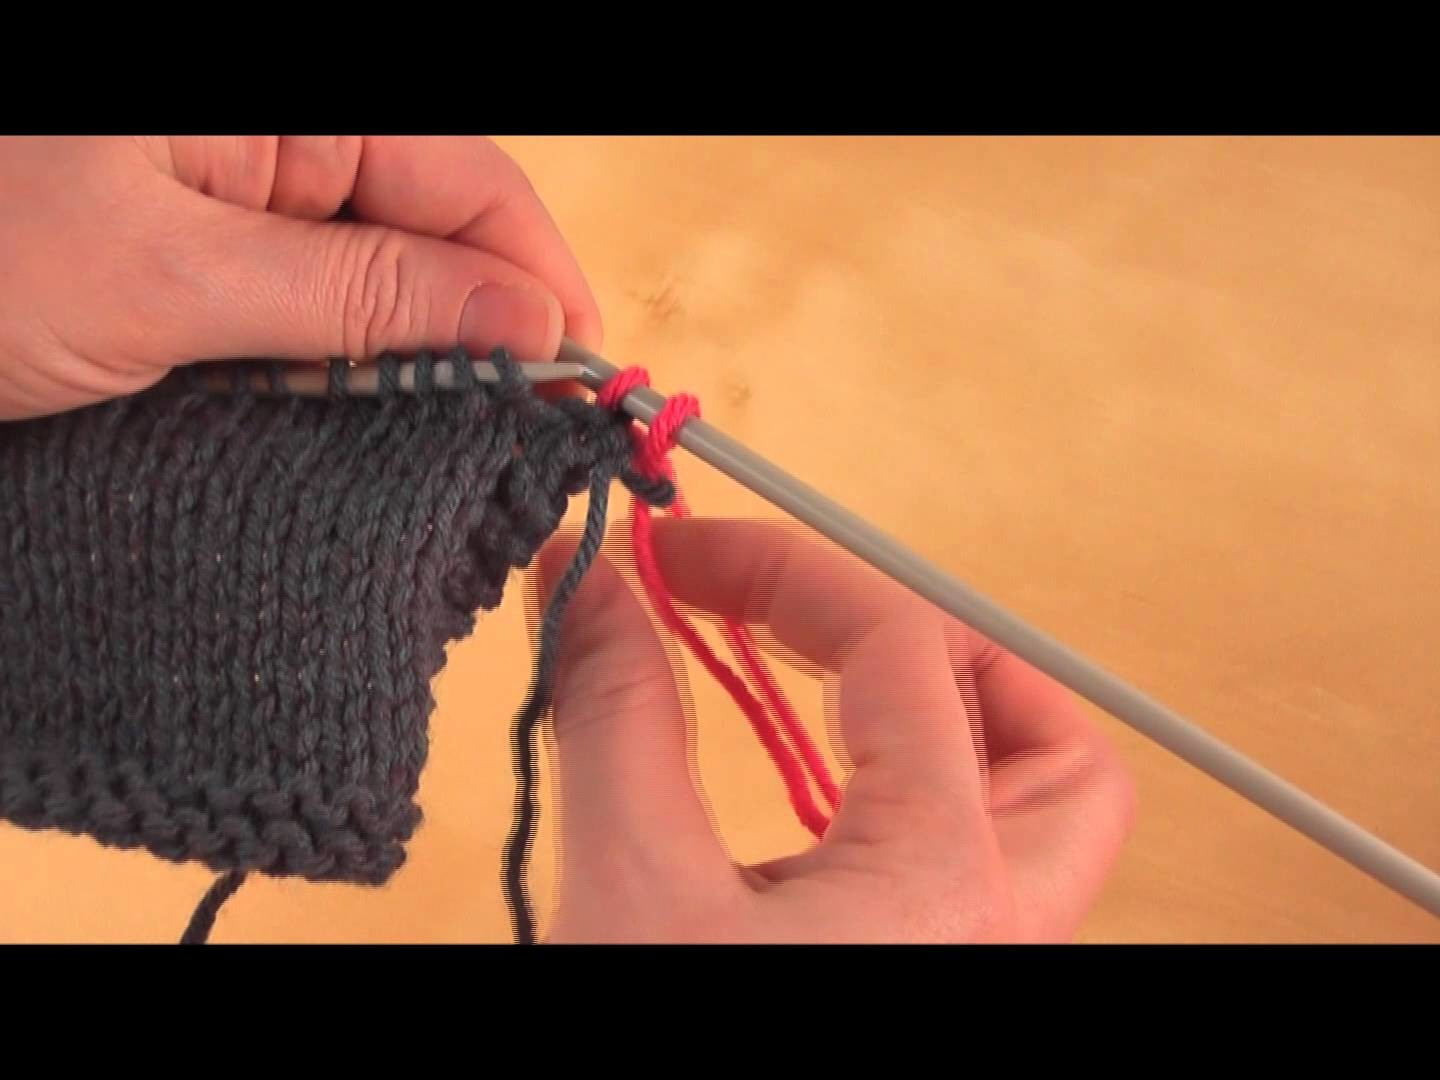 How to: Change Colors or balls while knitting